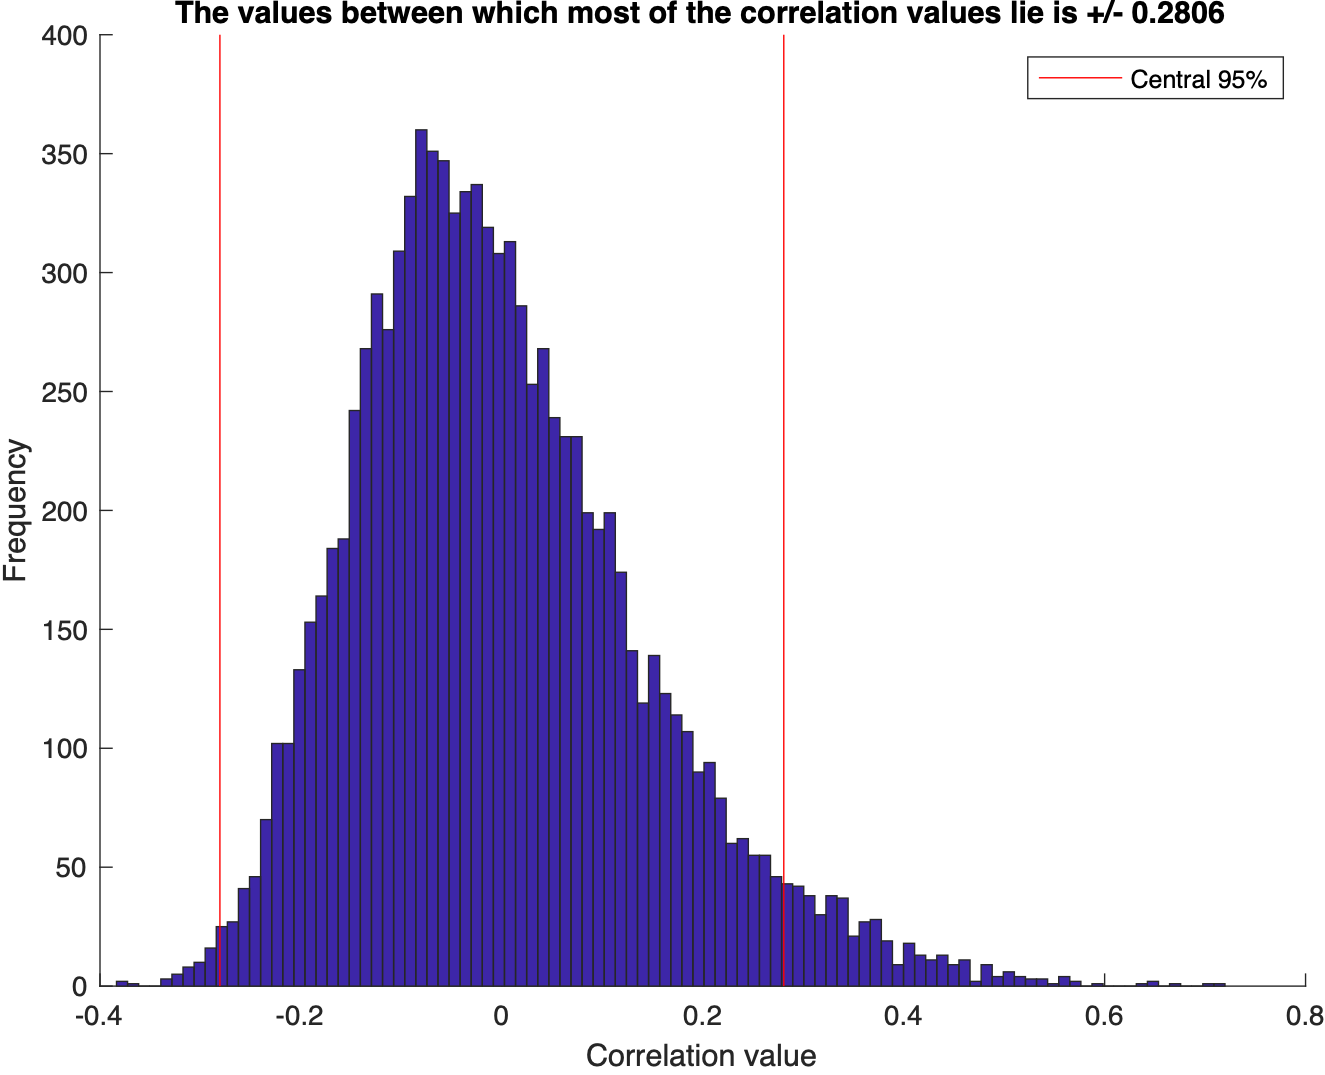 Monte carlo simulation to test for the correlation between two dataset in matlab (codes included)